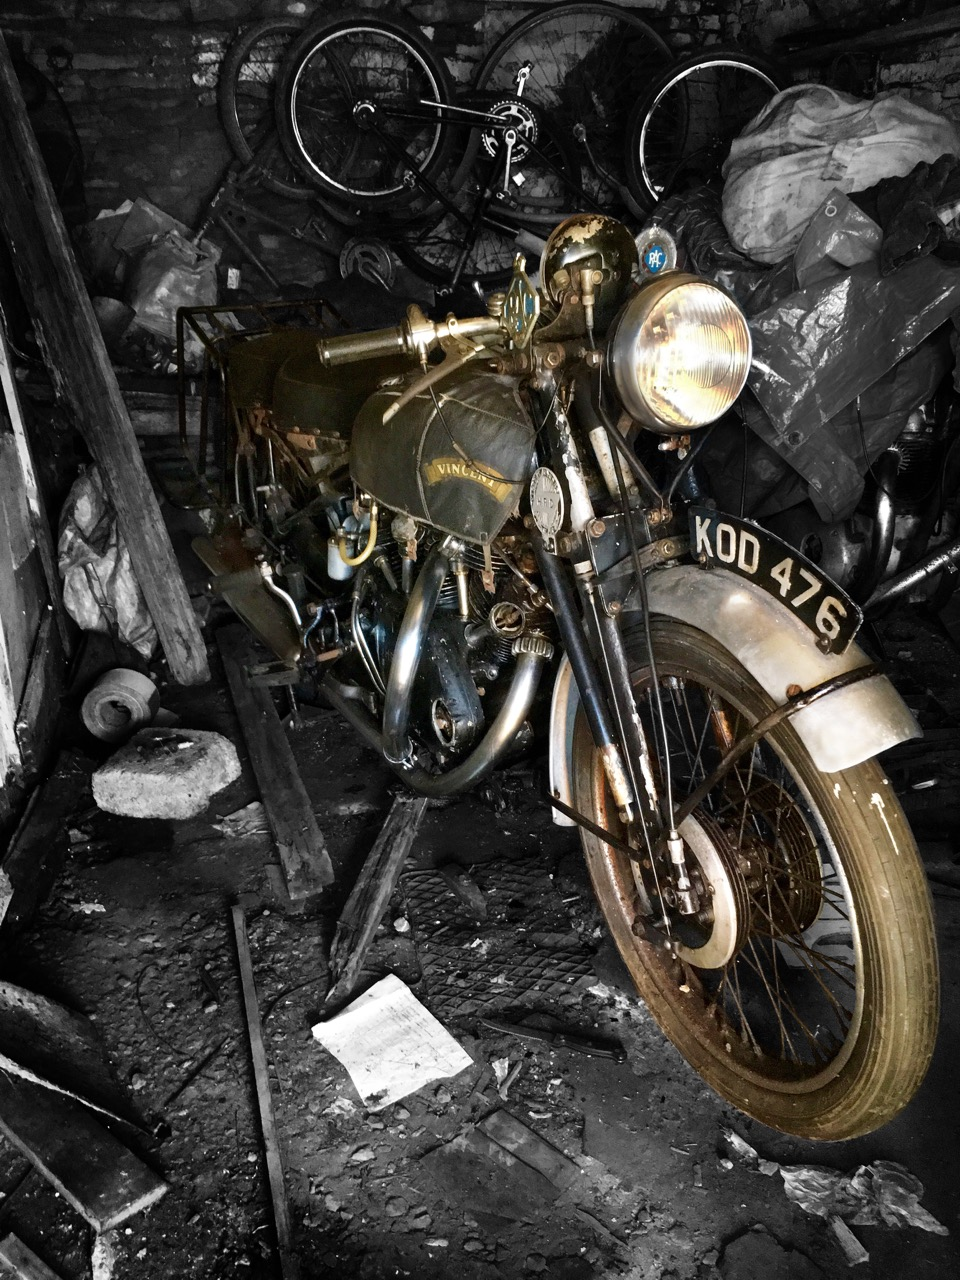 Barn-found 1949 Vincent White Shadow sell for $210,000+ at Bonhams auction in England | Bonhams photos